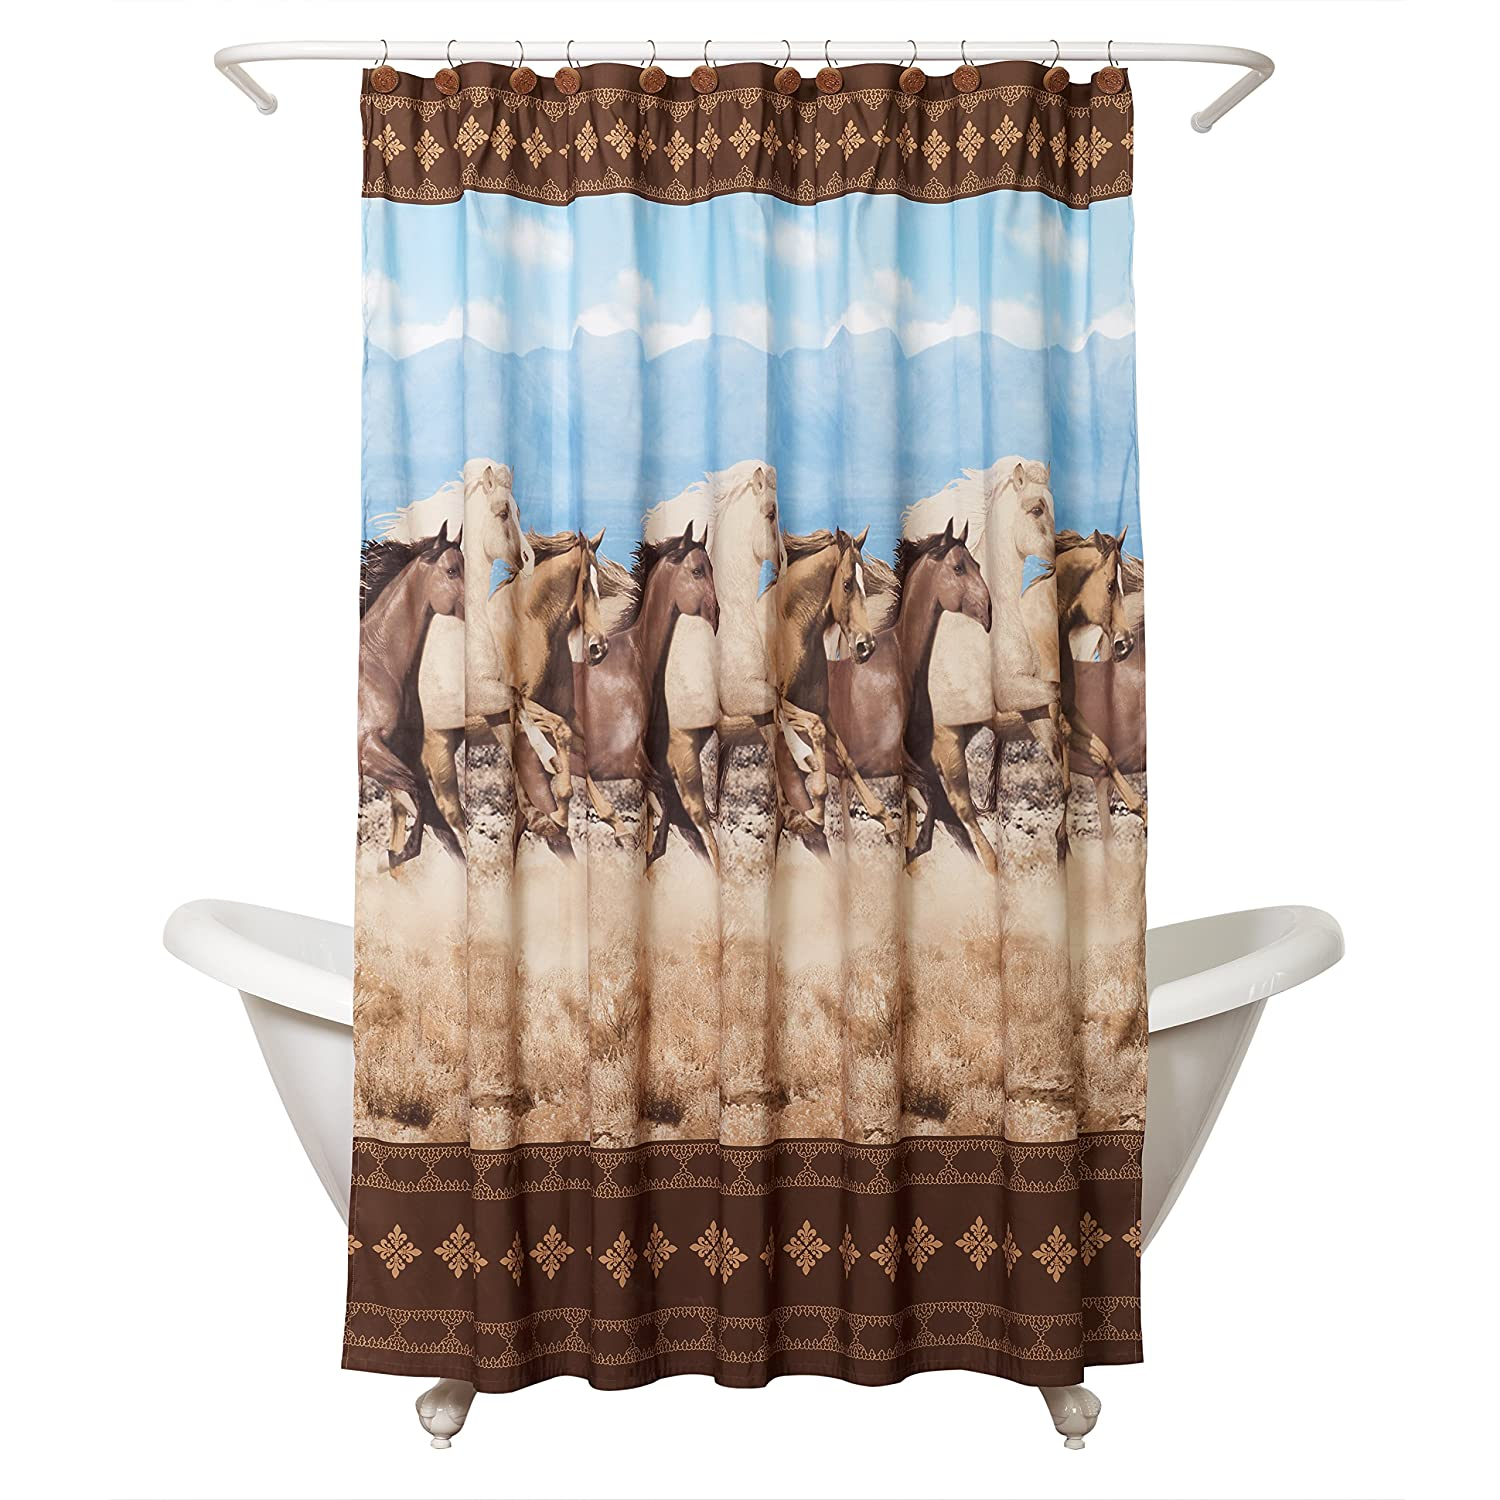 Zenna Home, Running Free Shower Curtain, Western/Horses Zenith Products Corporation 167190027Z